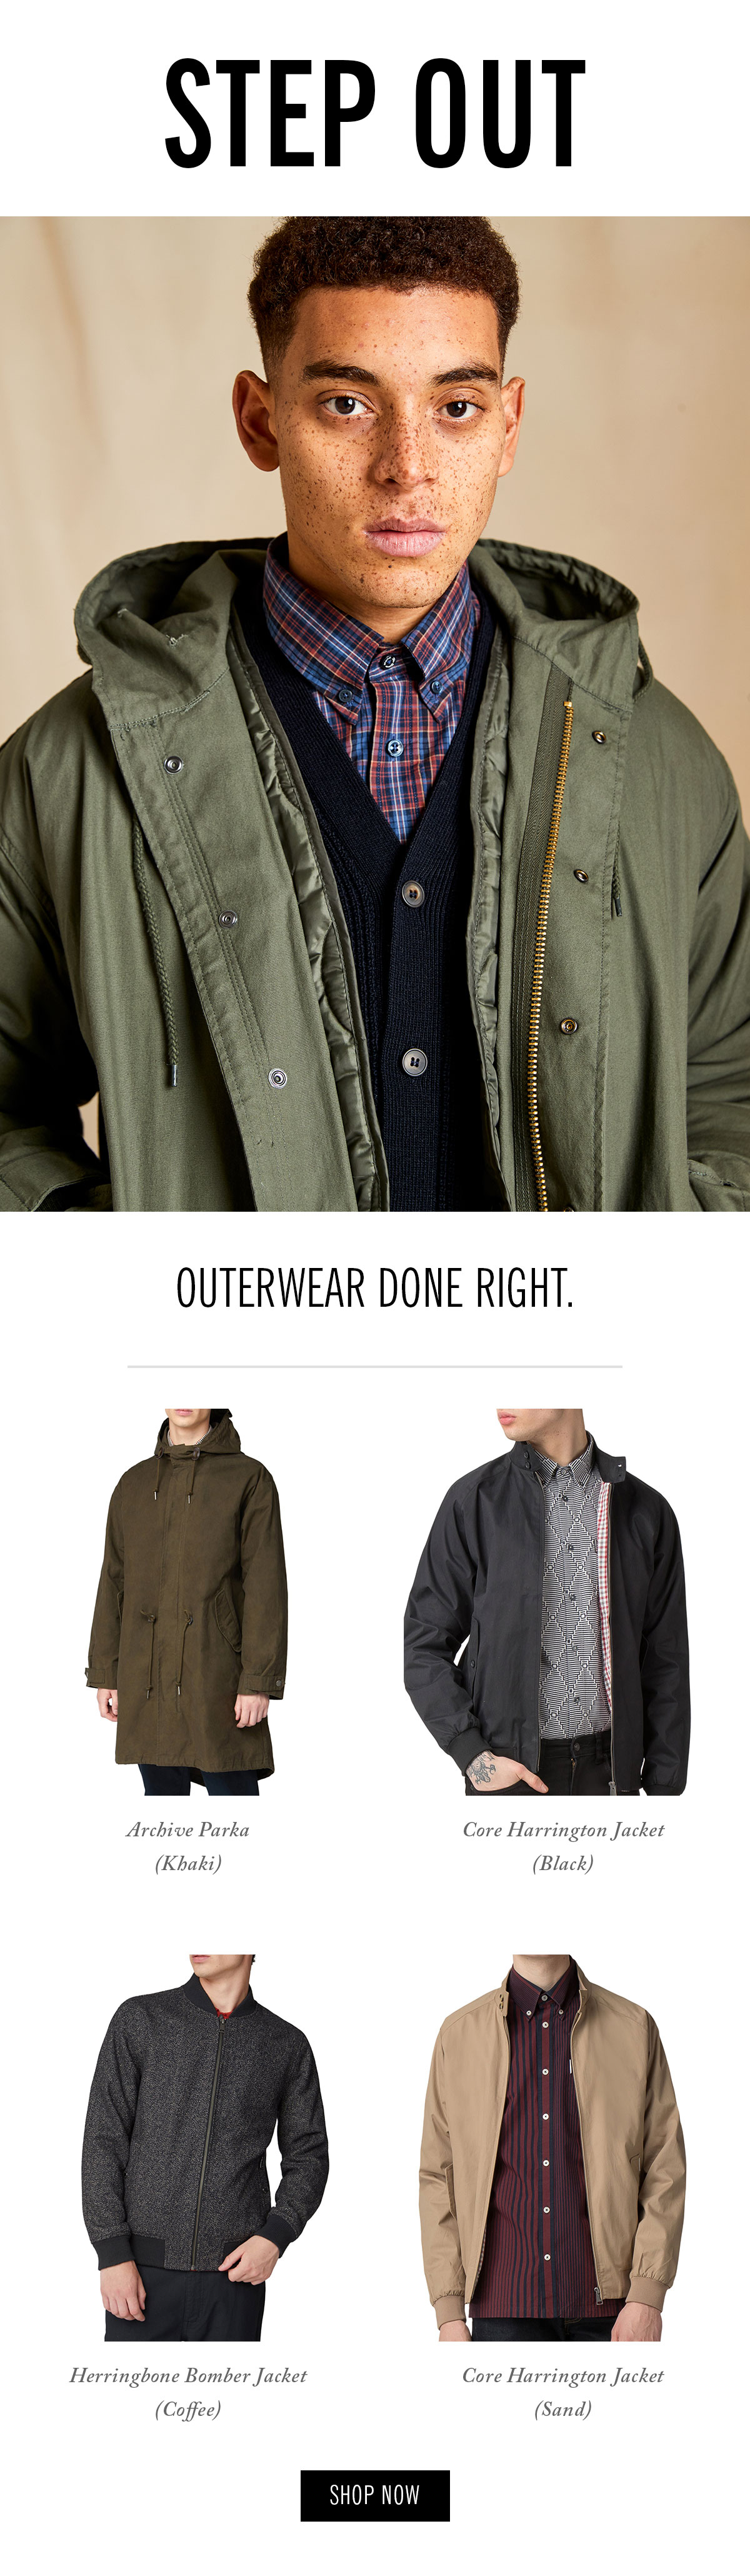 Outerwear done right | Coats and jackets